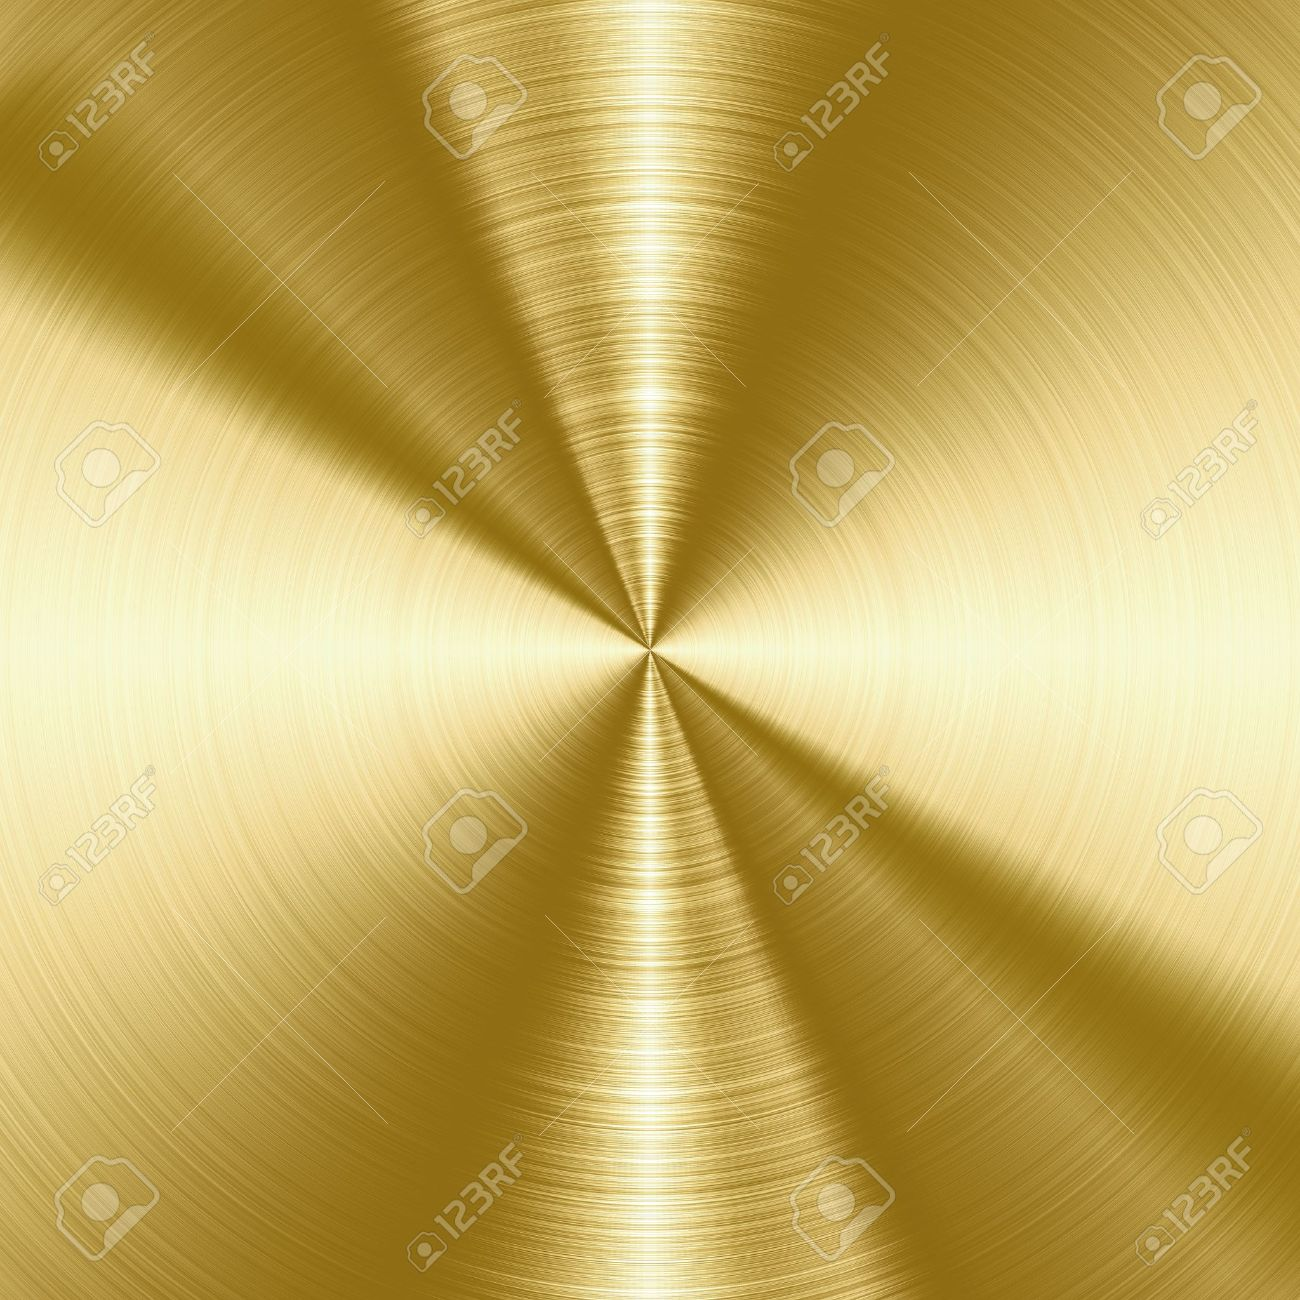 Shiny, gold brushed metal texture, background with copy space Stock Photo - 22024049